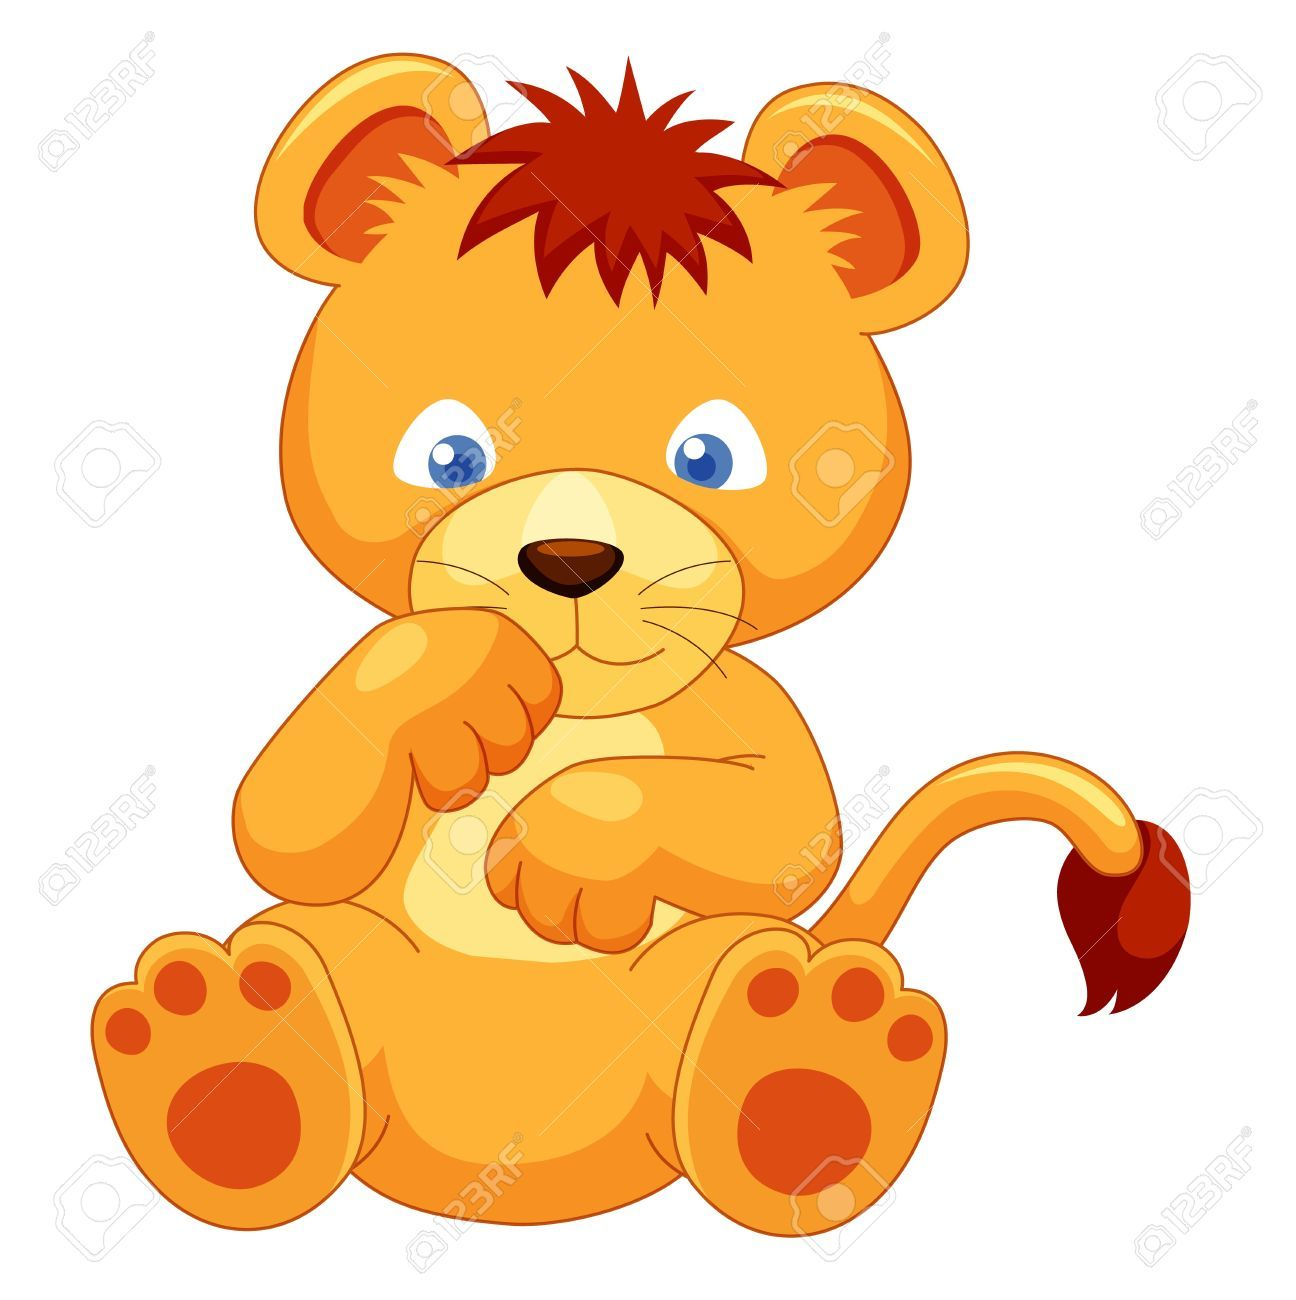 14884256 cute lion cub vector stock photo jpg 1296 1300 lions rh pinterest com cute lion cub clipart lion cub scout clipart